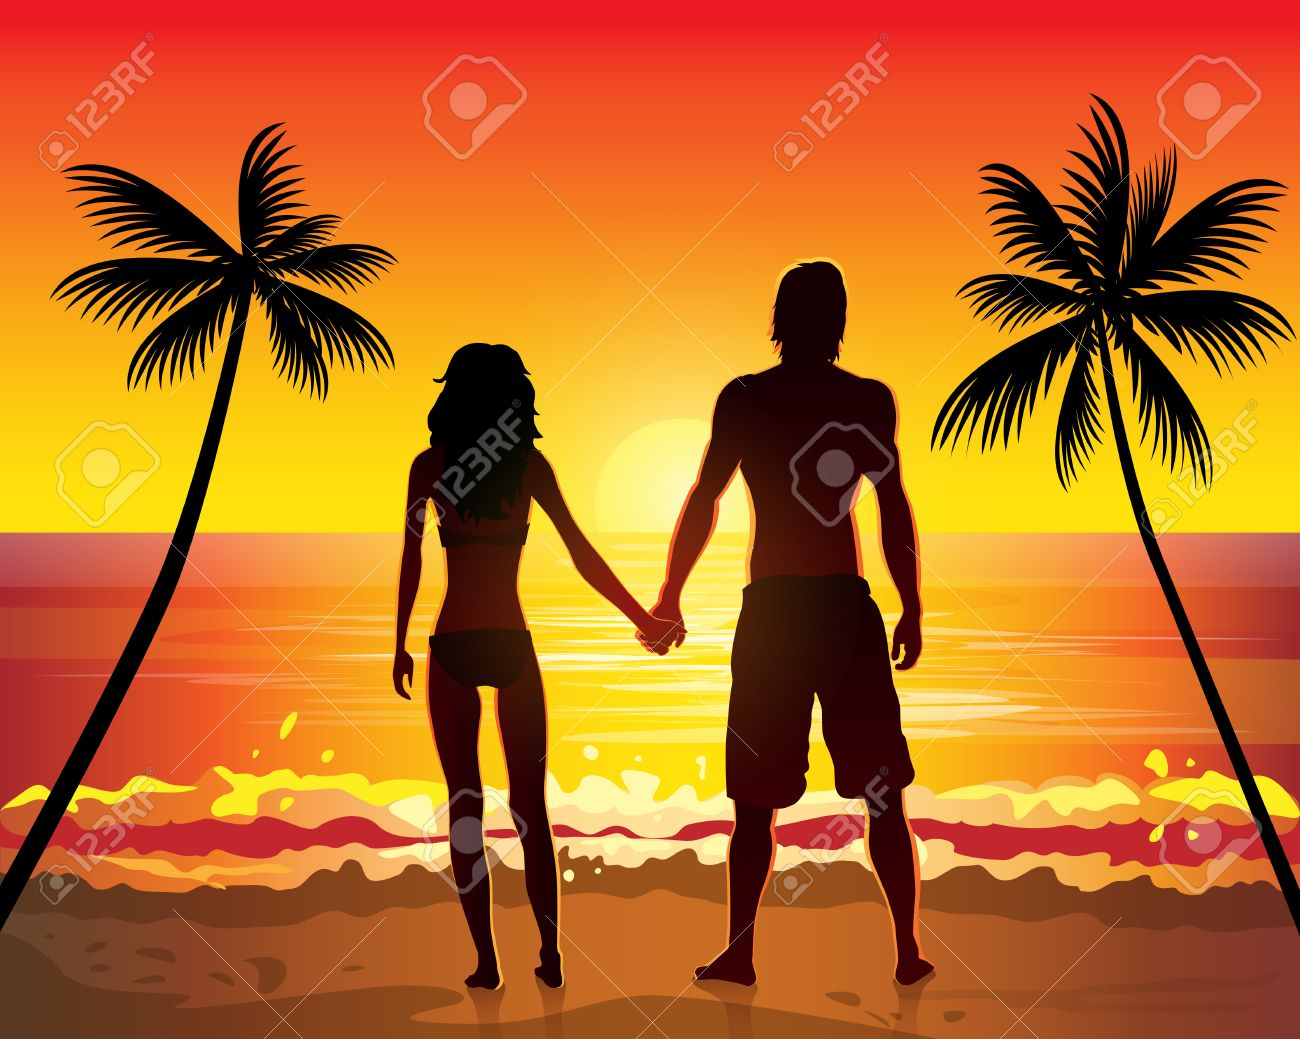 Romantic Couple Holding Hands On Beach Sunset Royalty Free.